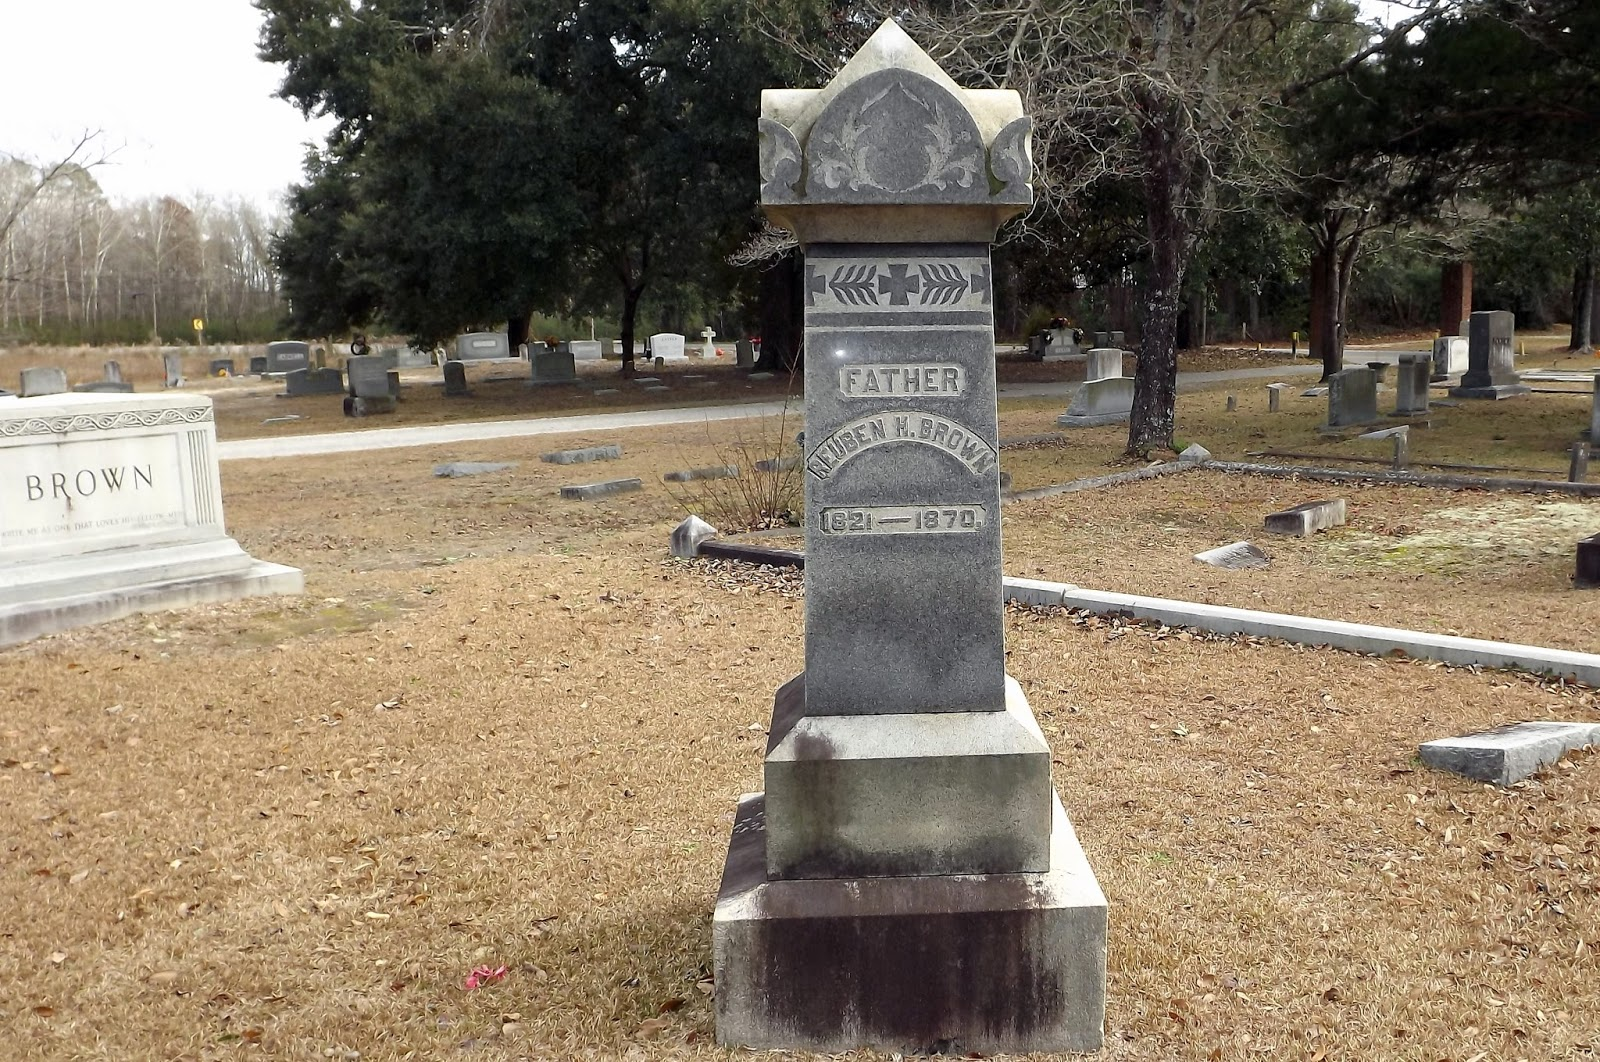 Reuben Brown Gravemarker Chadbourn, NC Photo by Mike Hollingsworth